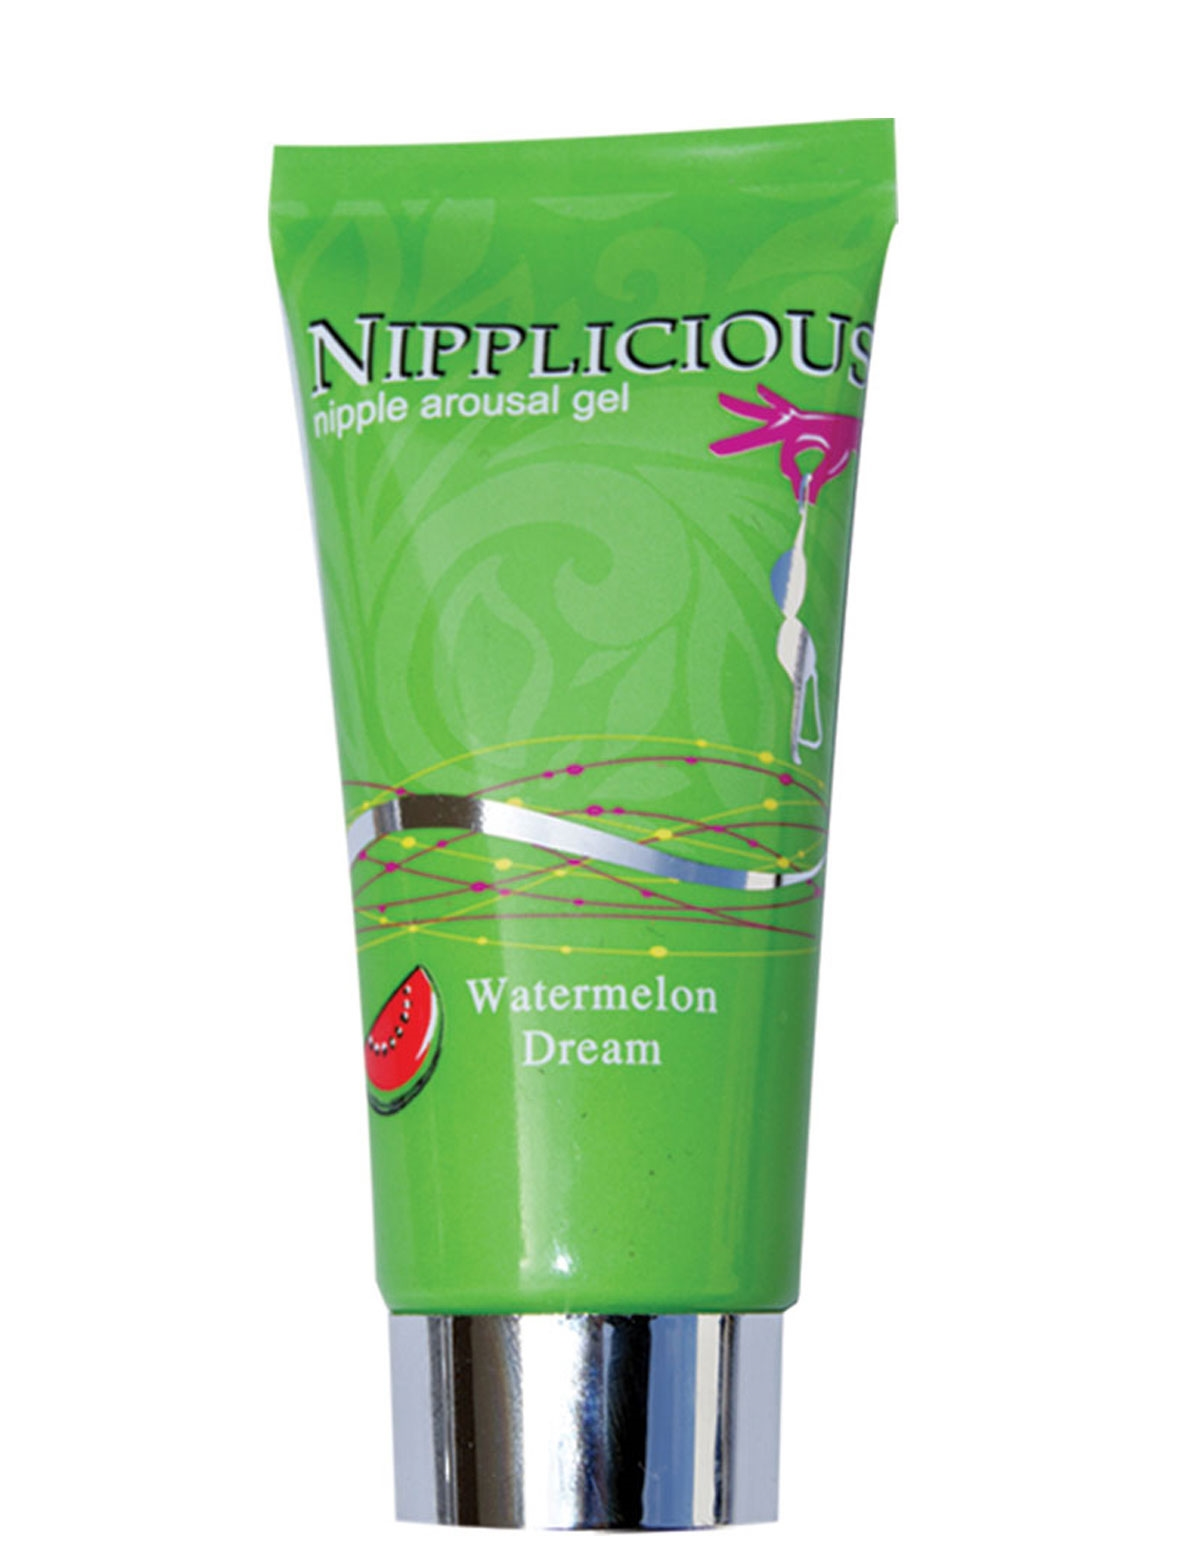 Nipplicious Watermelon Dream